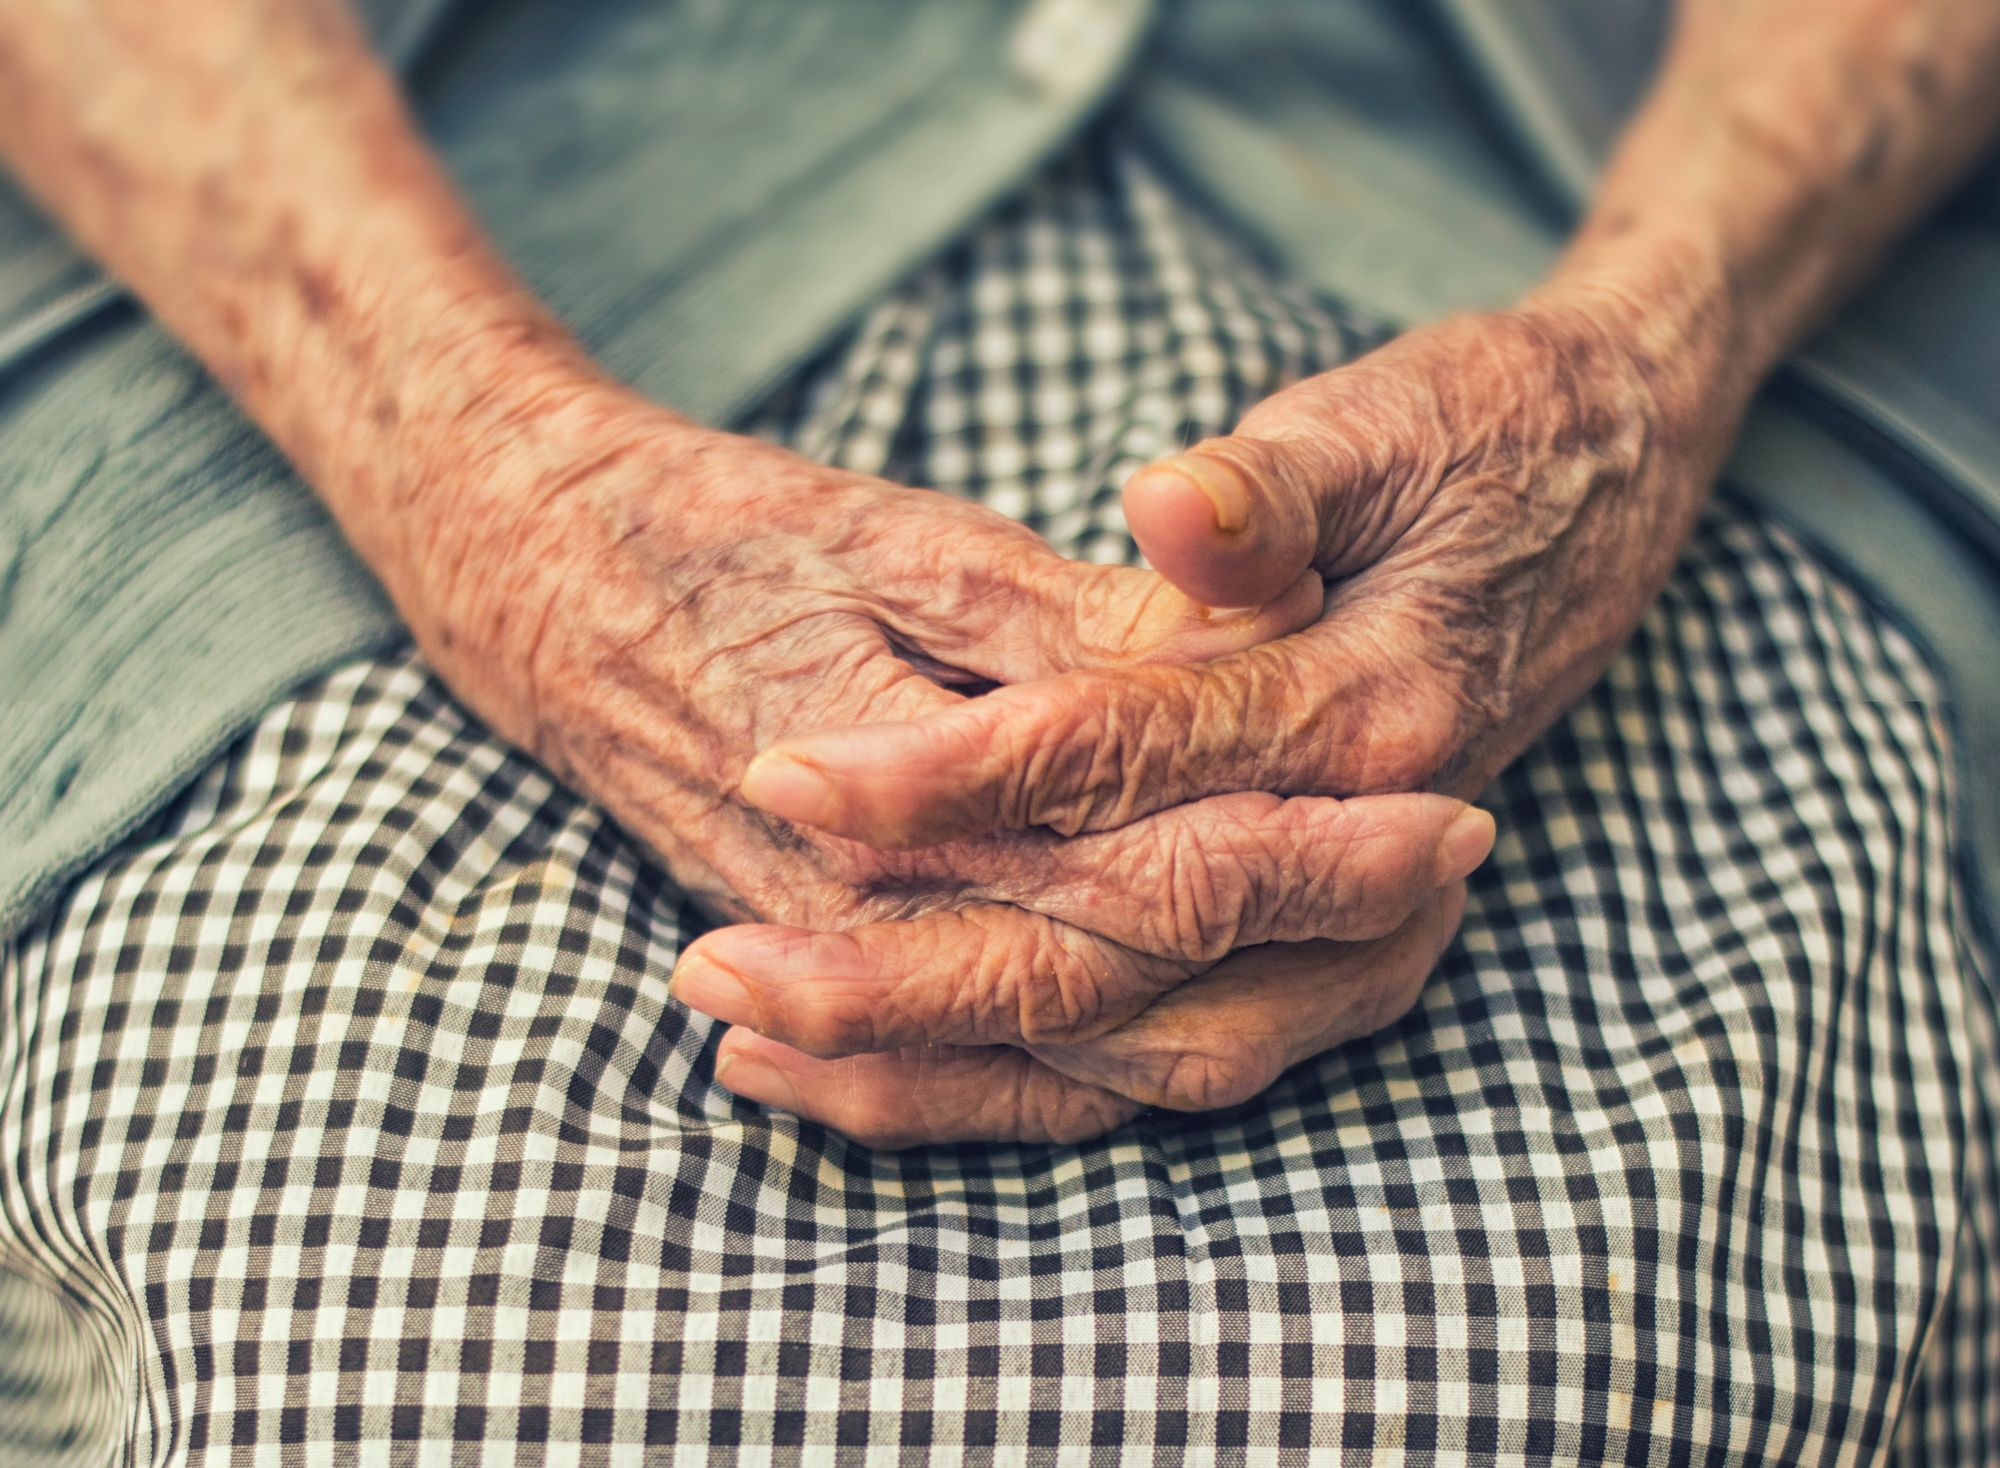 Human Defense Initiative Delivers Care-Packages to Seniors Thanks to Donors